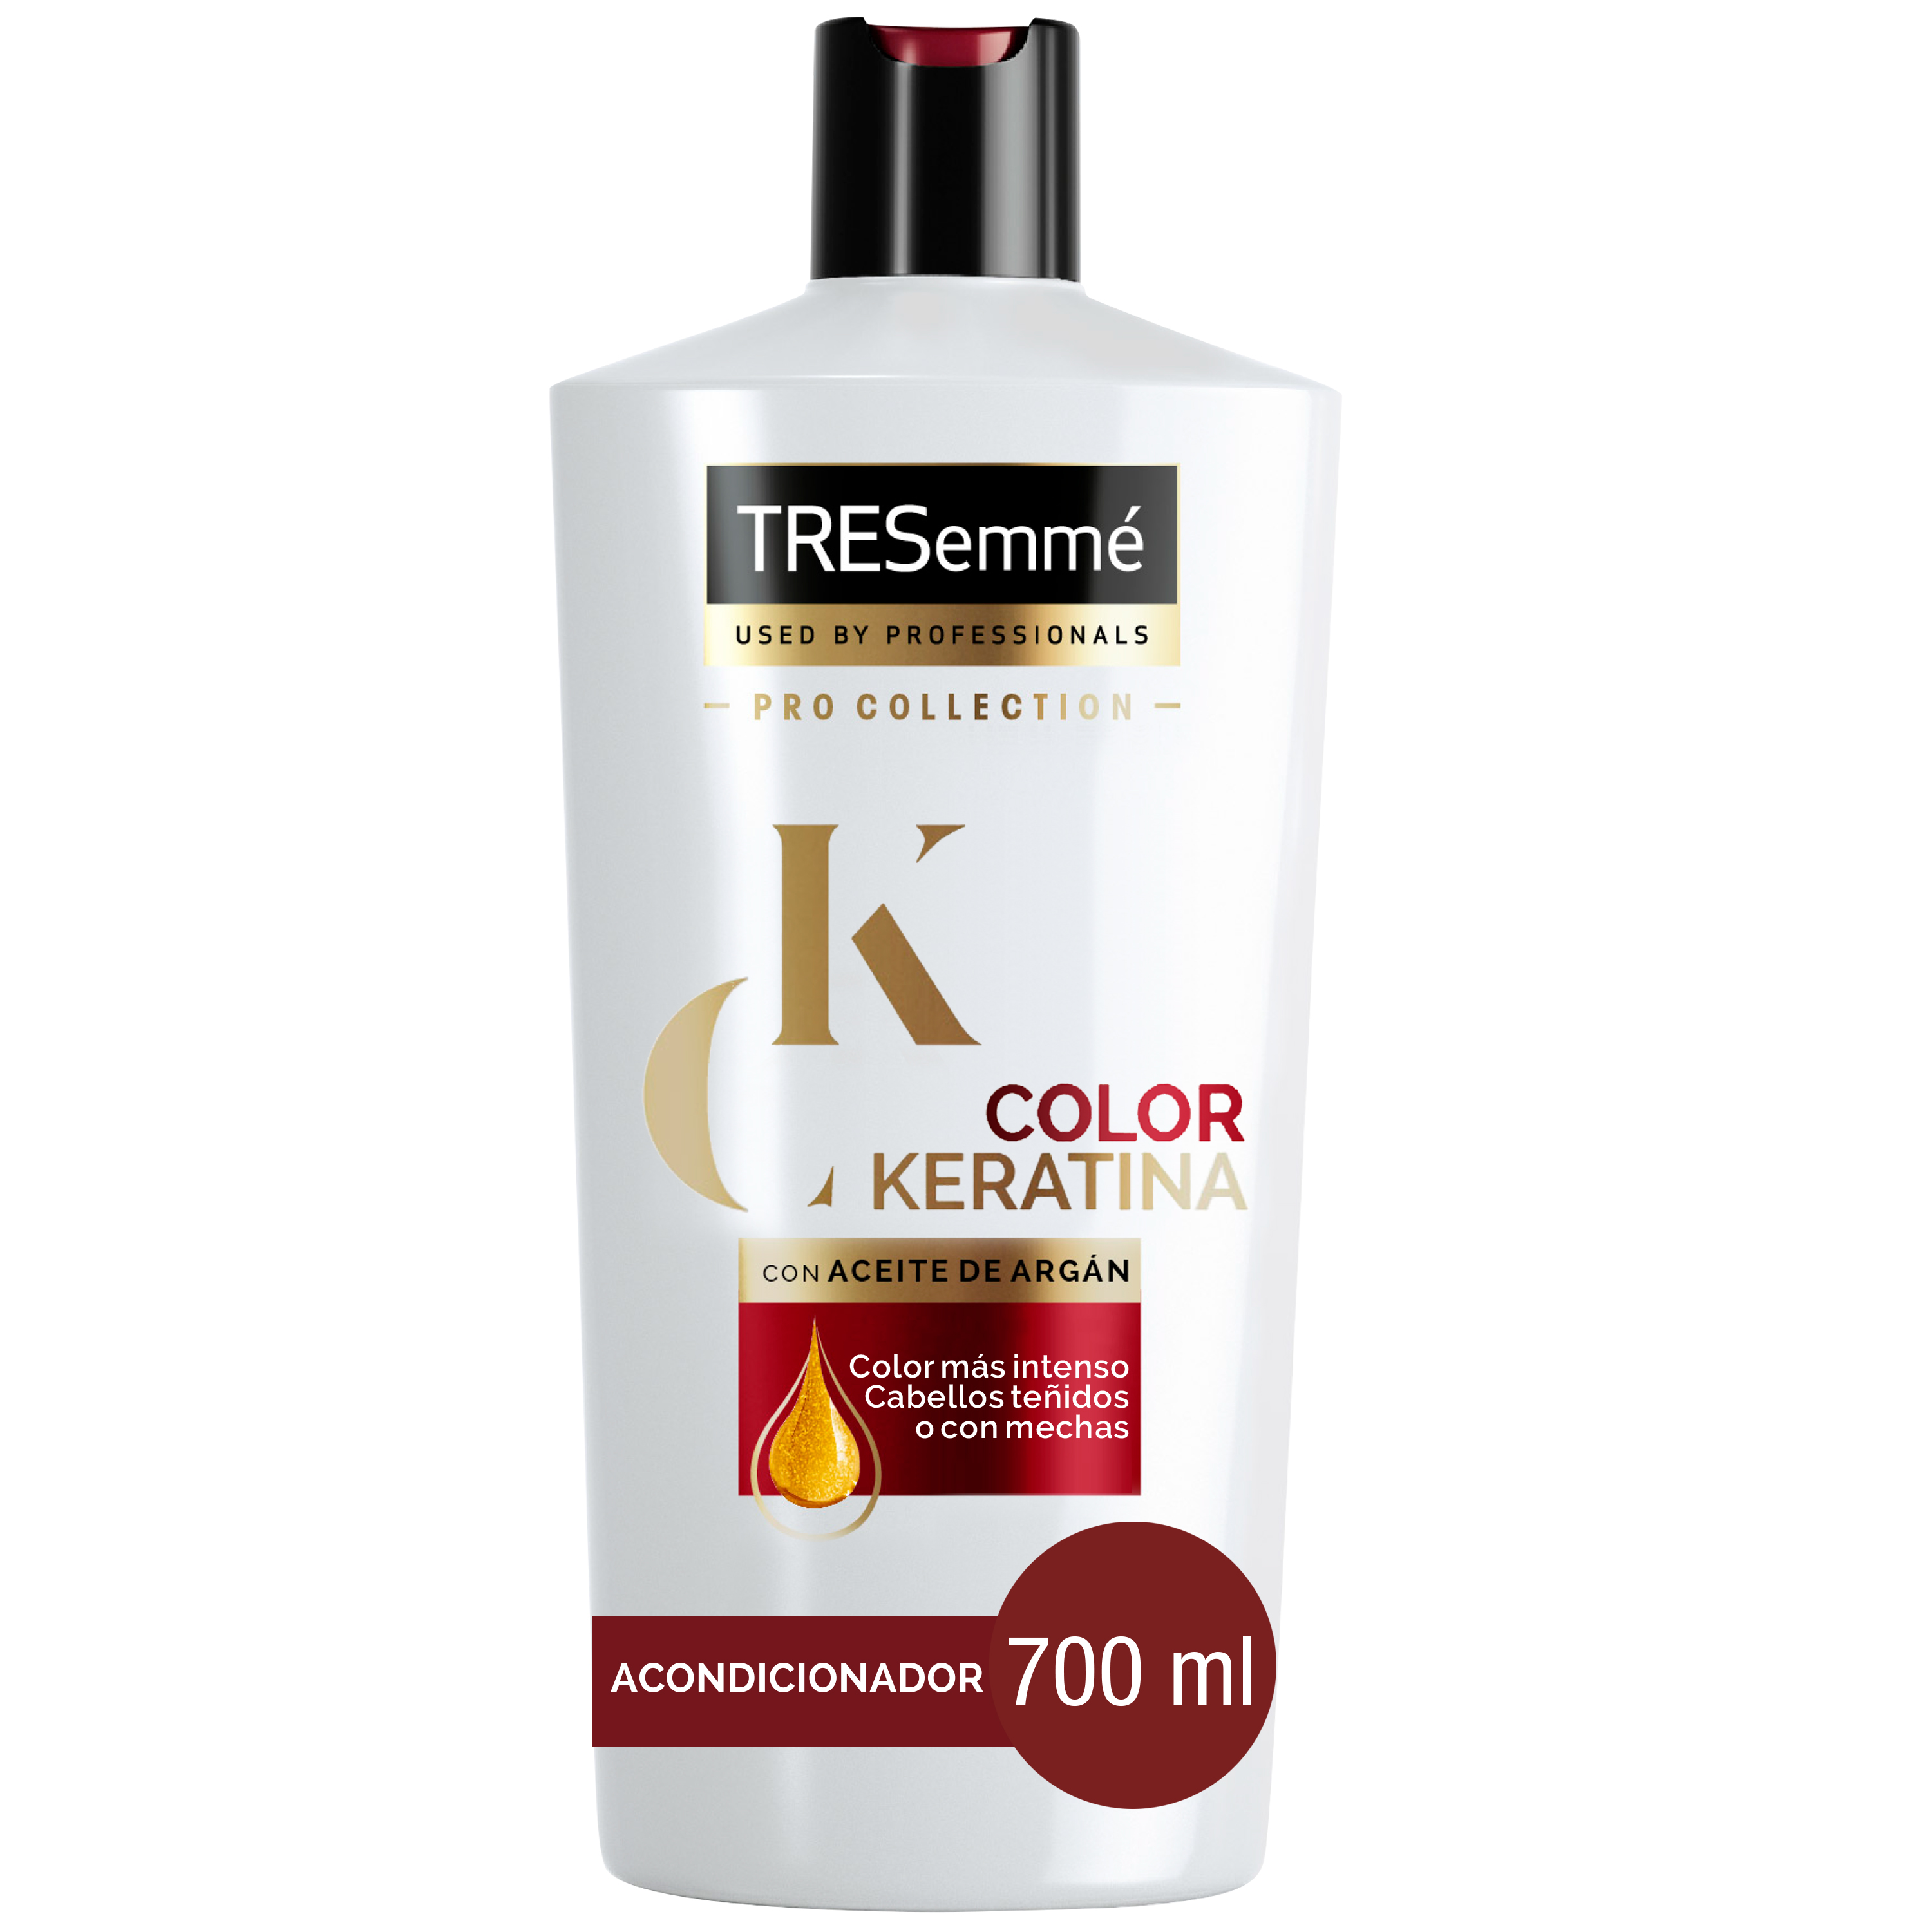 Tresemmé pro collection acondicionador color keratina con aceite argan cabellos teñidos con mechas de 70cl. en botella